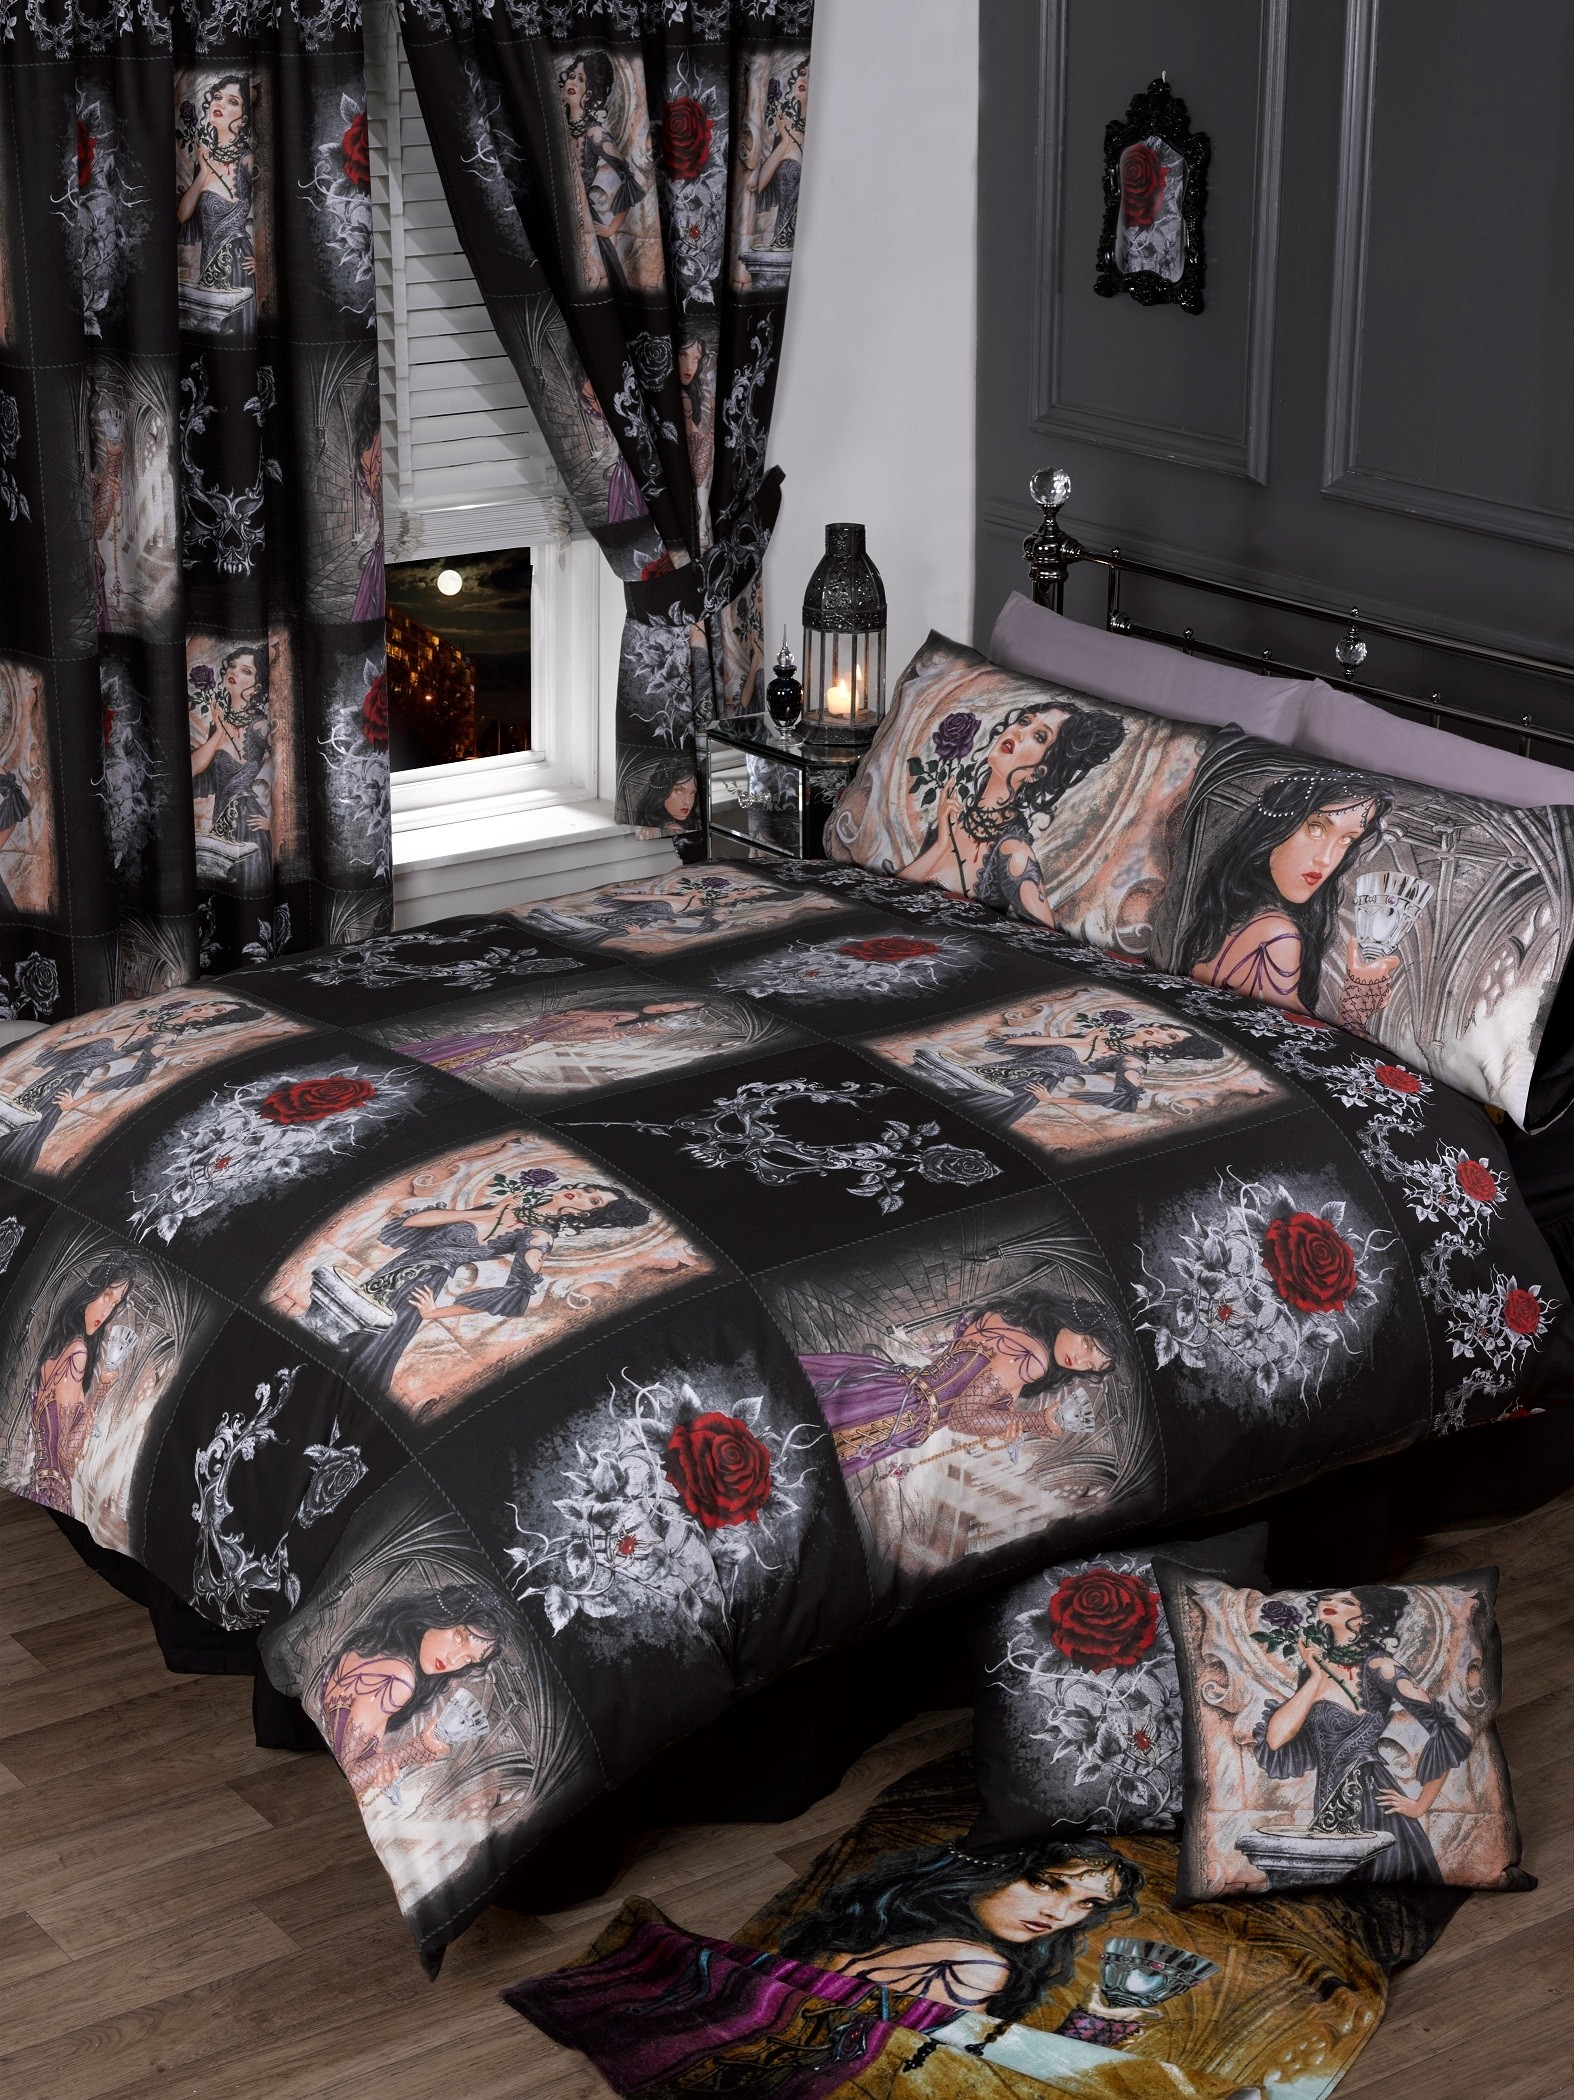 Super King Size Alchemy Story Of The Rose Gothic Duvet Cover & Matching Pillowcases